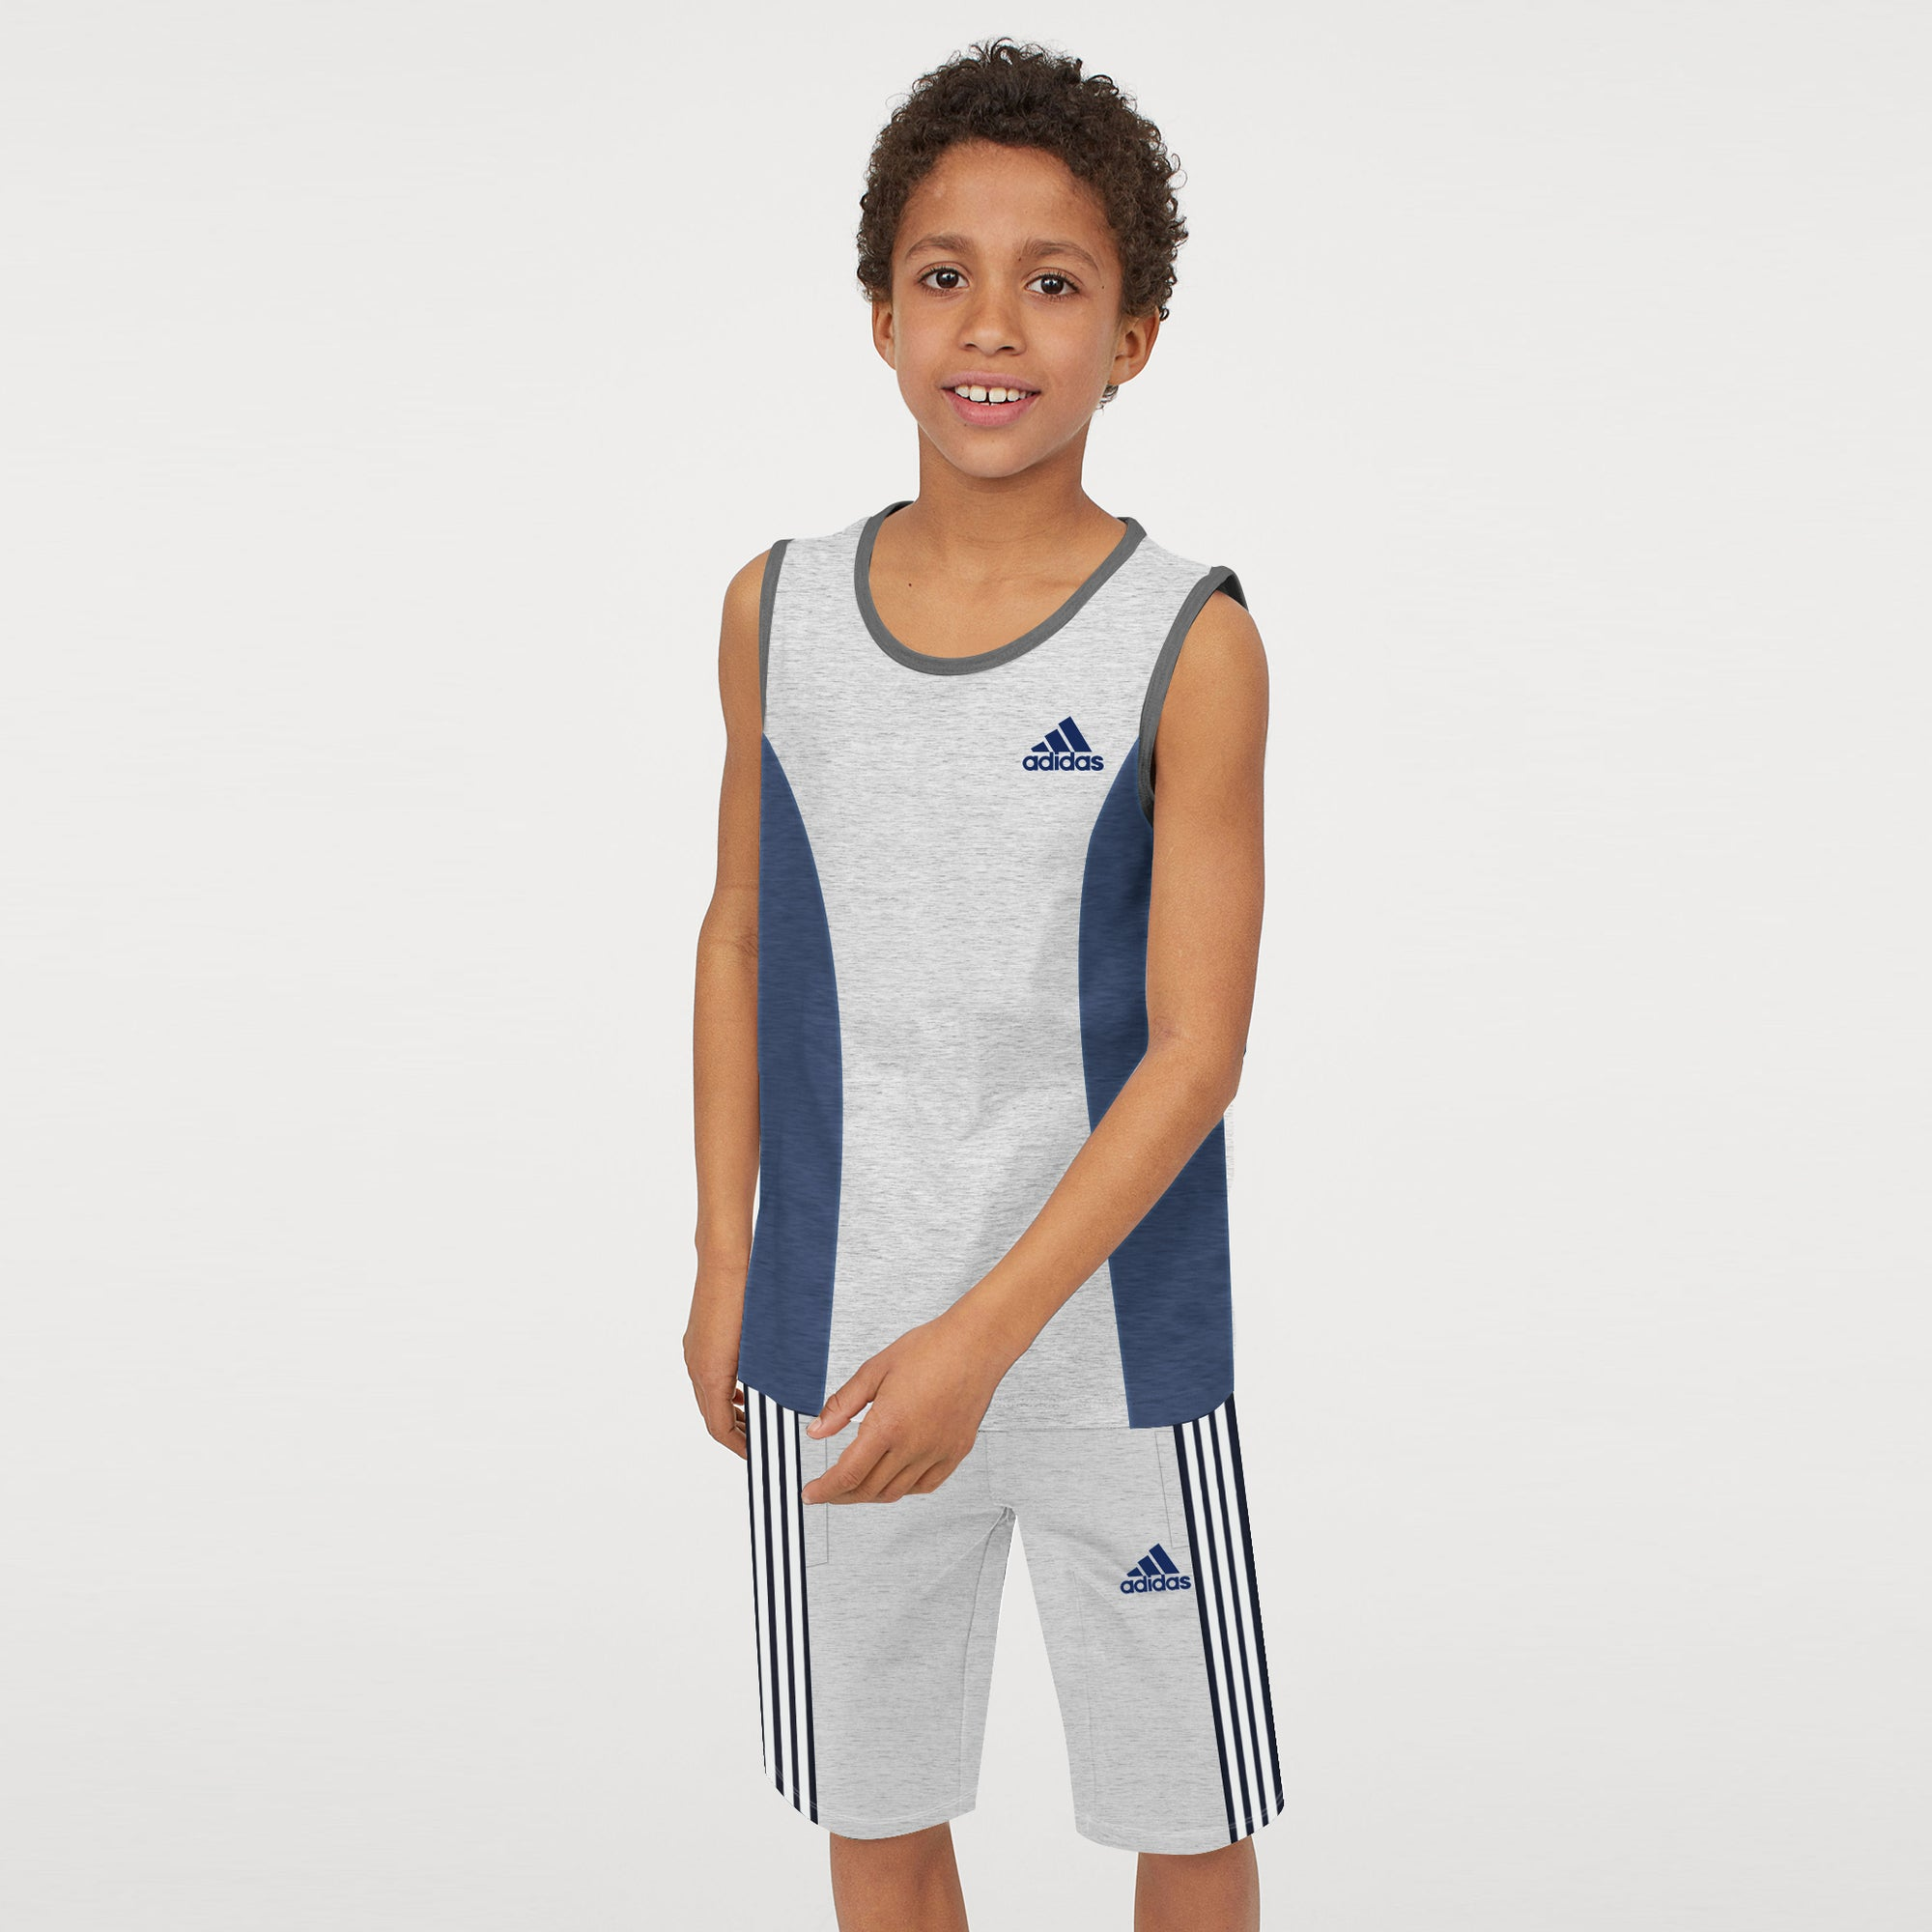 Adidas Single Jersey Sport Suit For Kids-Grey & Navy Melange with White Stripe-BE9436